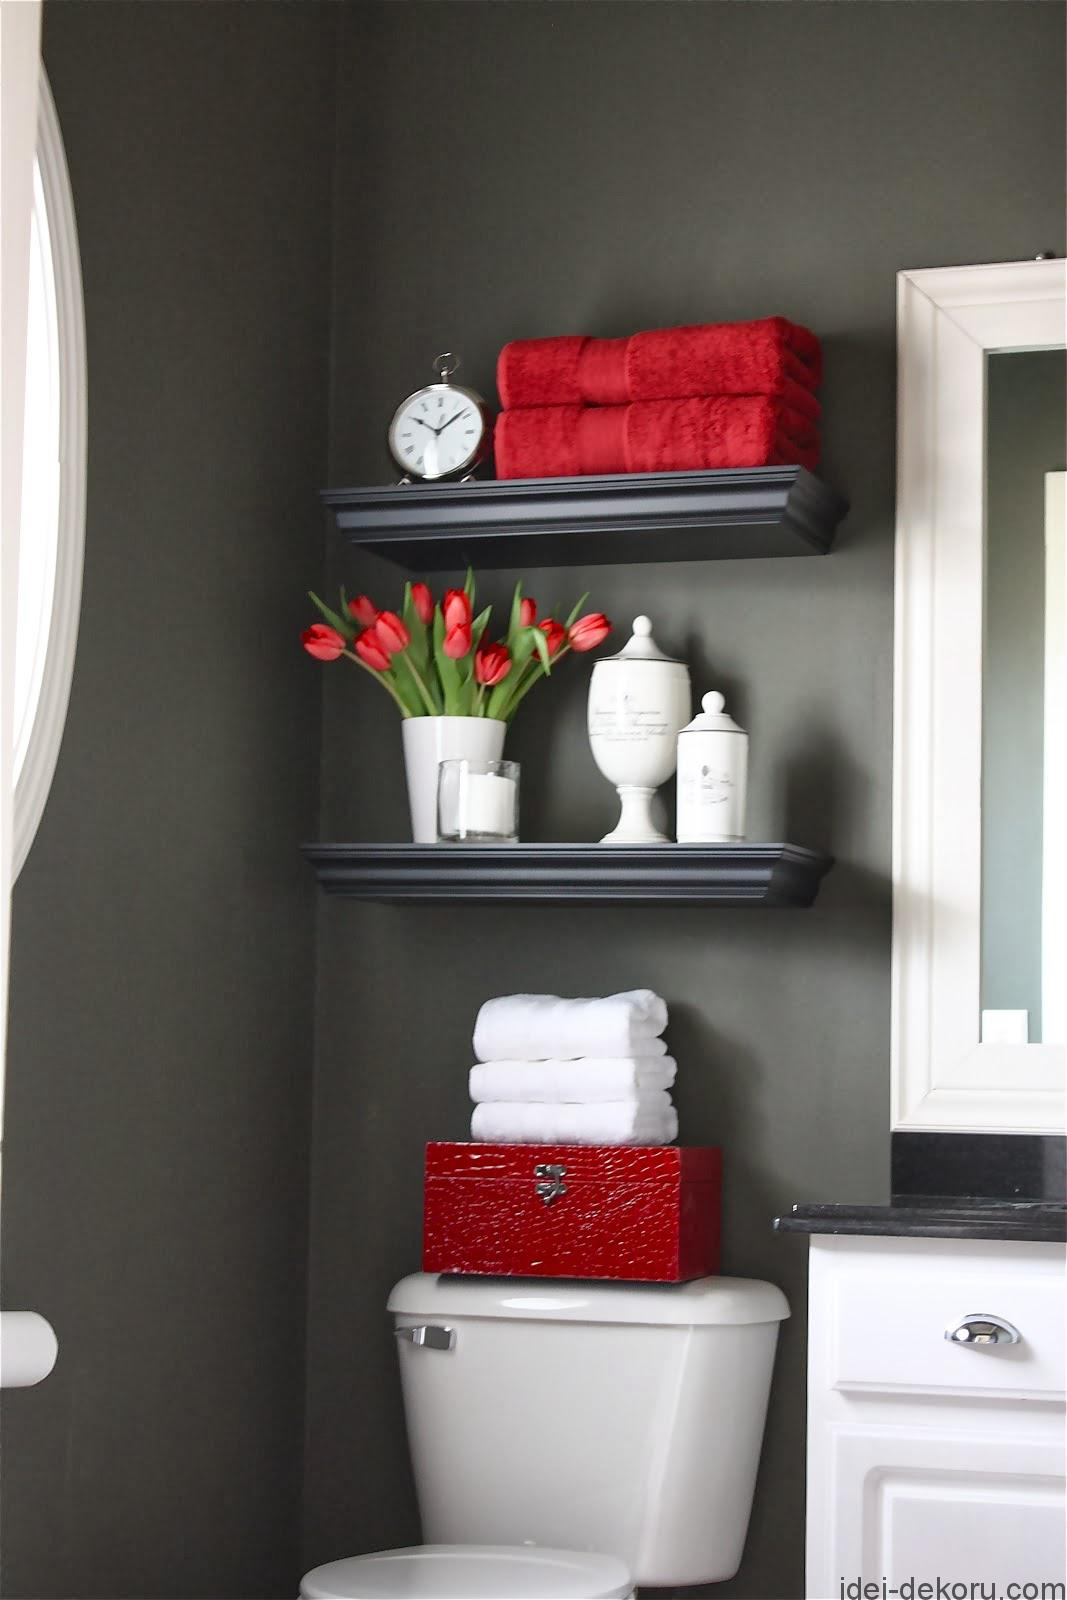 Prepare-for-Holiday-House-Guests-Paint-Your-Guest-Bathroom-from-Bathroom-Bliss-by-Rotator-Rod-6